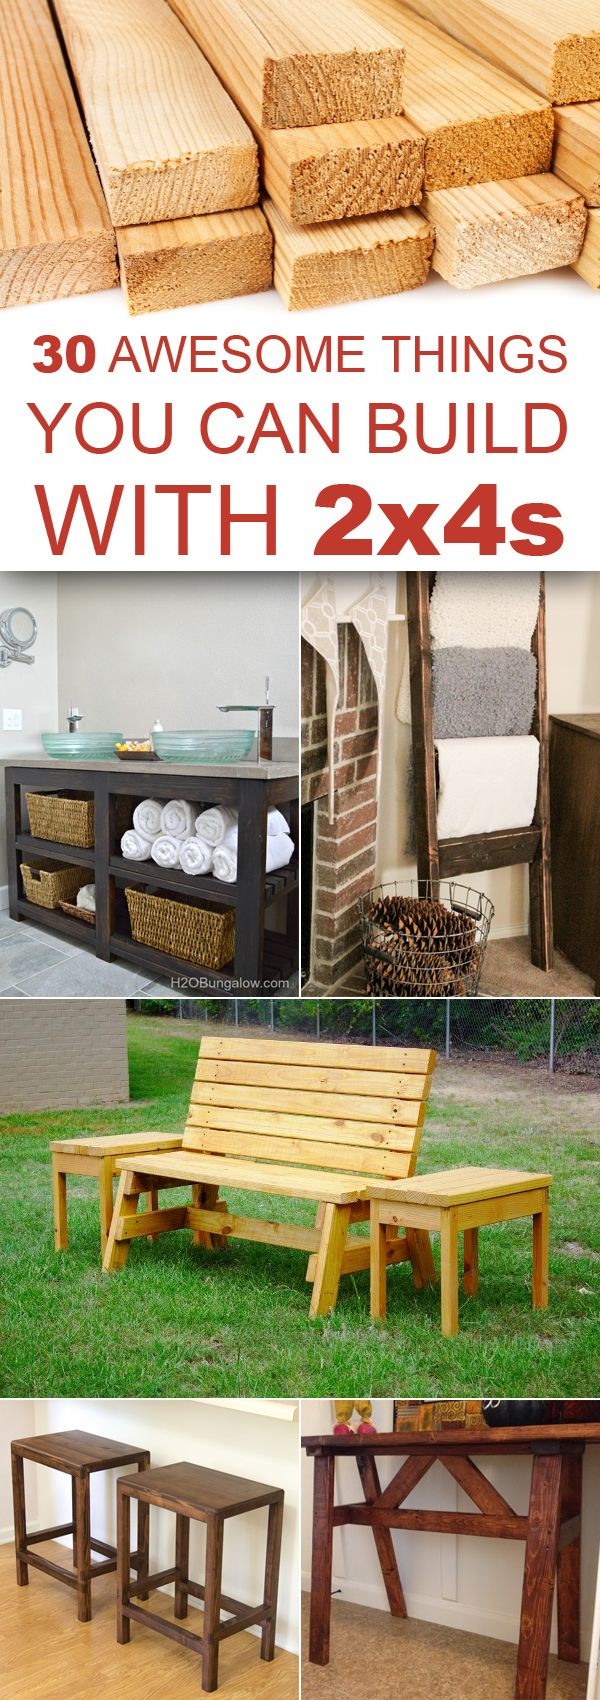 #woodworkingplans #woodworking #woodworkingprojects 30 Awesome Things You Can Build With 2x4s